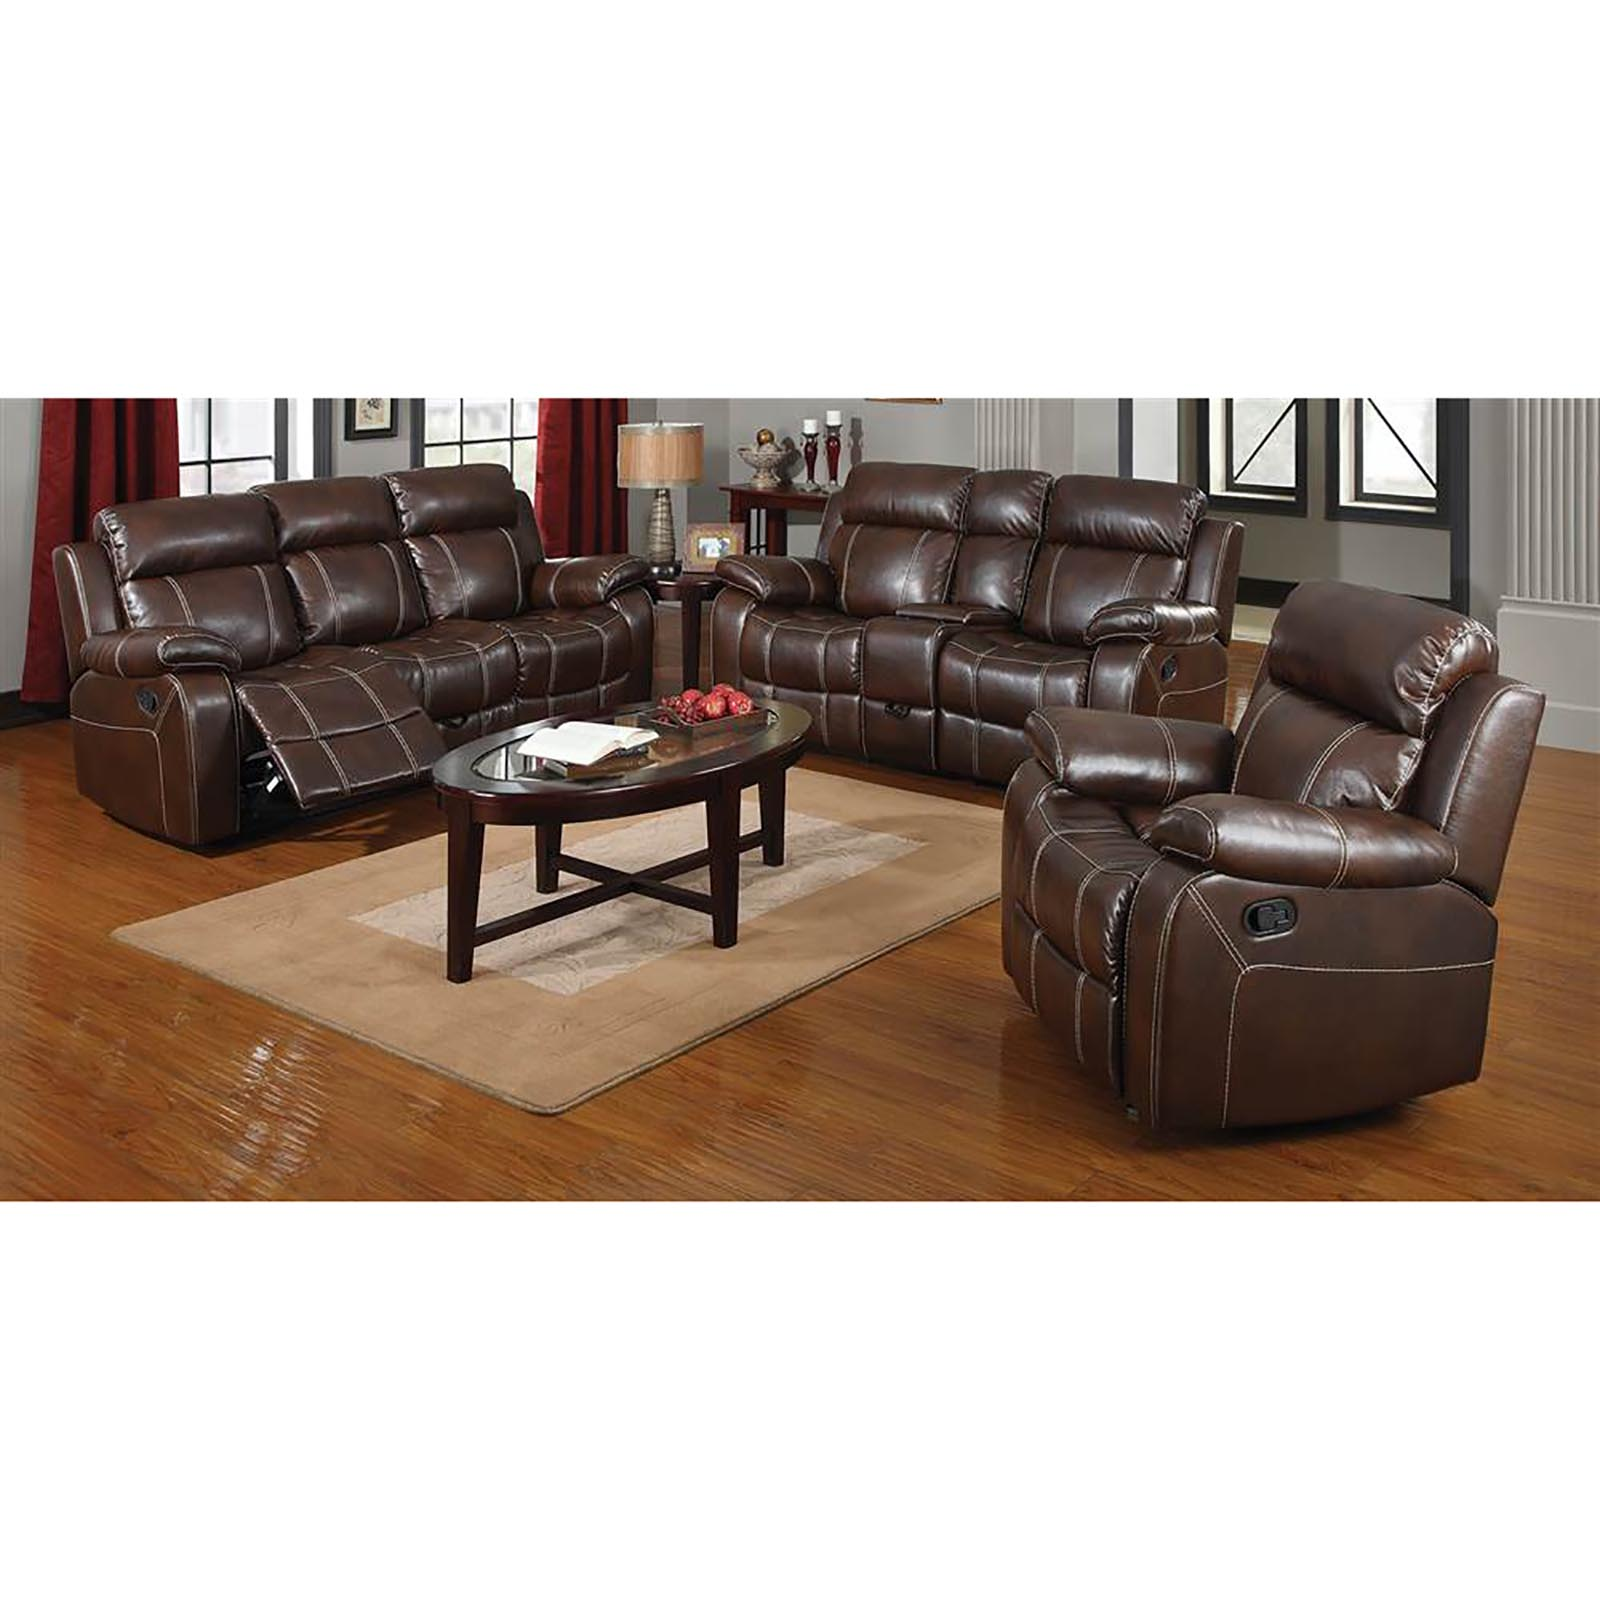 Coaster Myleene 3pc Leather Reclining Sofa Set Sears